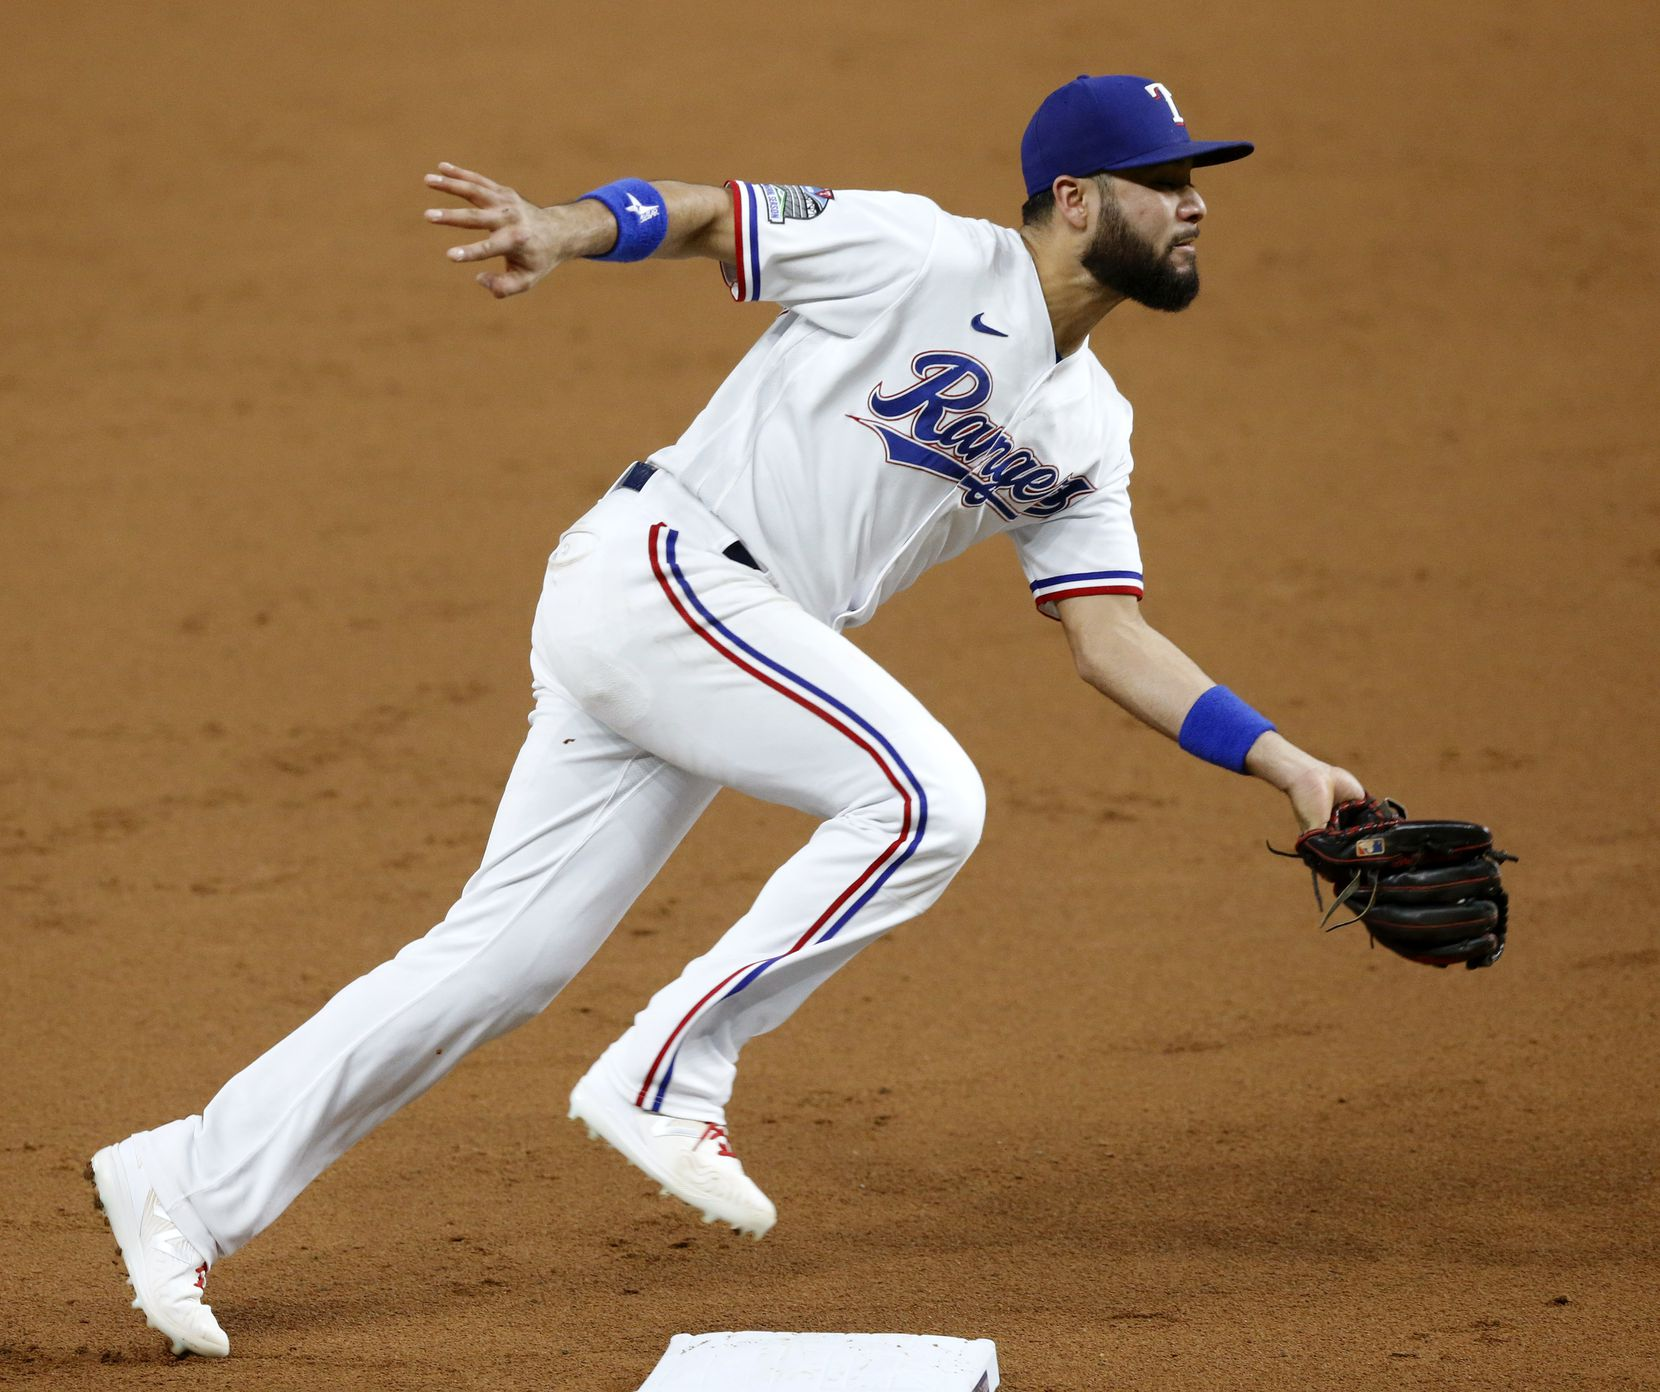 Texas Rangers third baseman Isiah Kiner-Falefa (9) scoops up a grounder by Los Angeles Angels batter Andrelton Simmons (2) and makes the out at first during the third inning at Globe Life Field in Arlington, Texas, Tuesday, September 8, 2020. (Tom Fox/The Dallas Morning News)